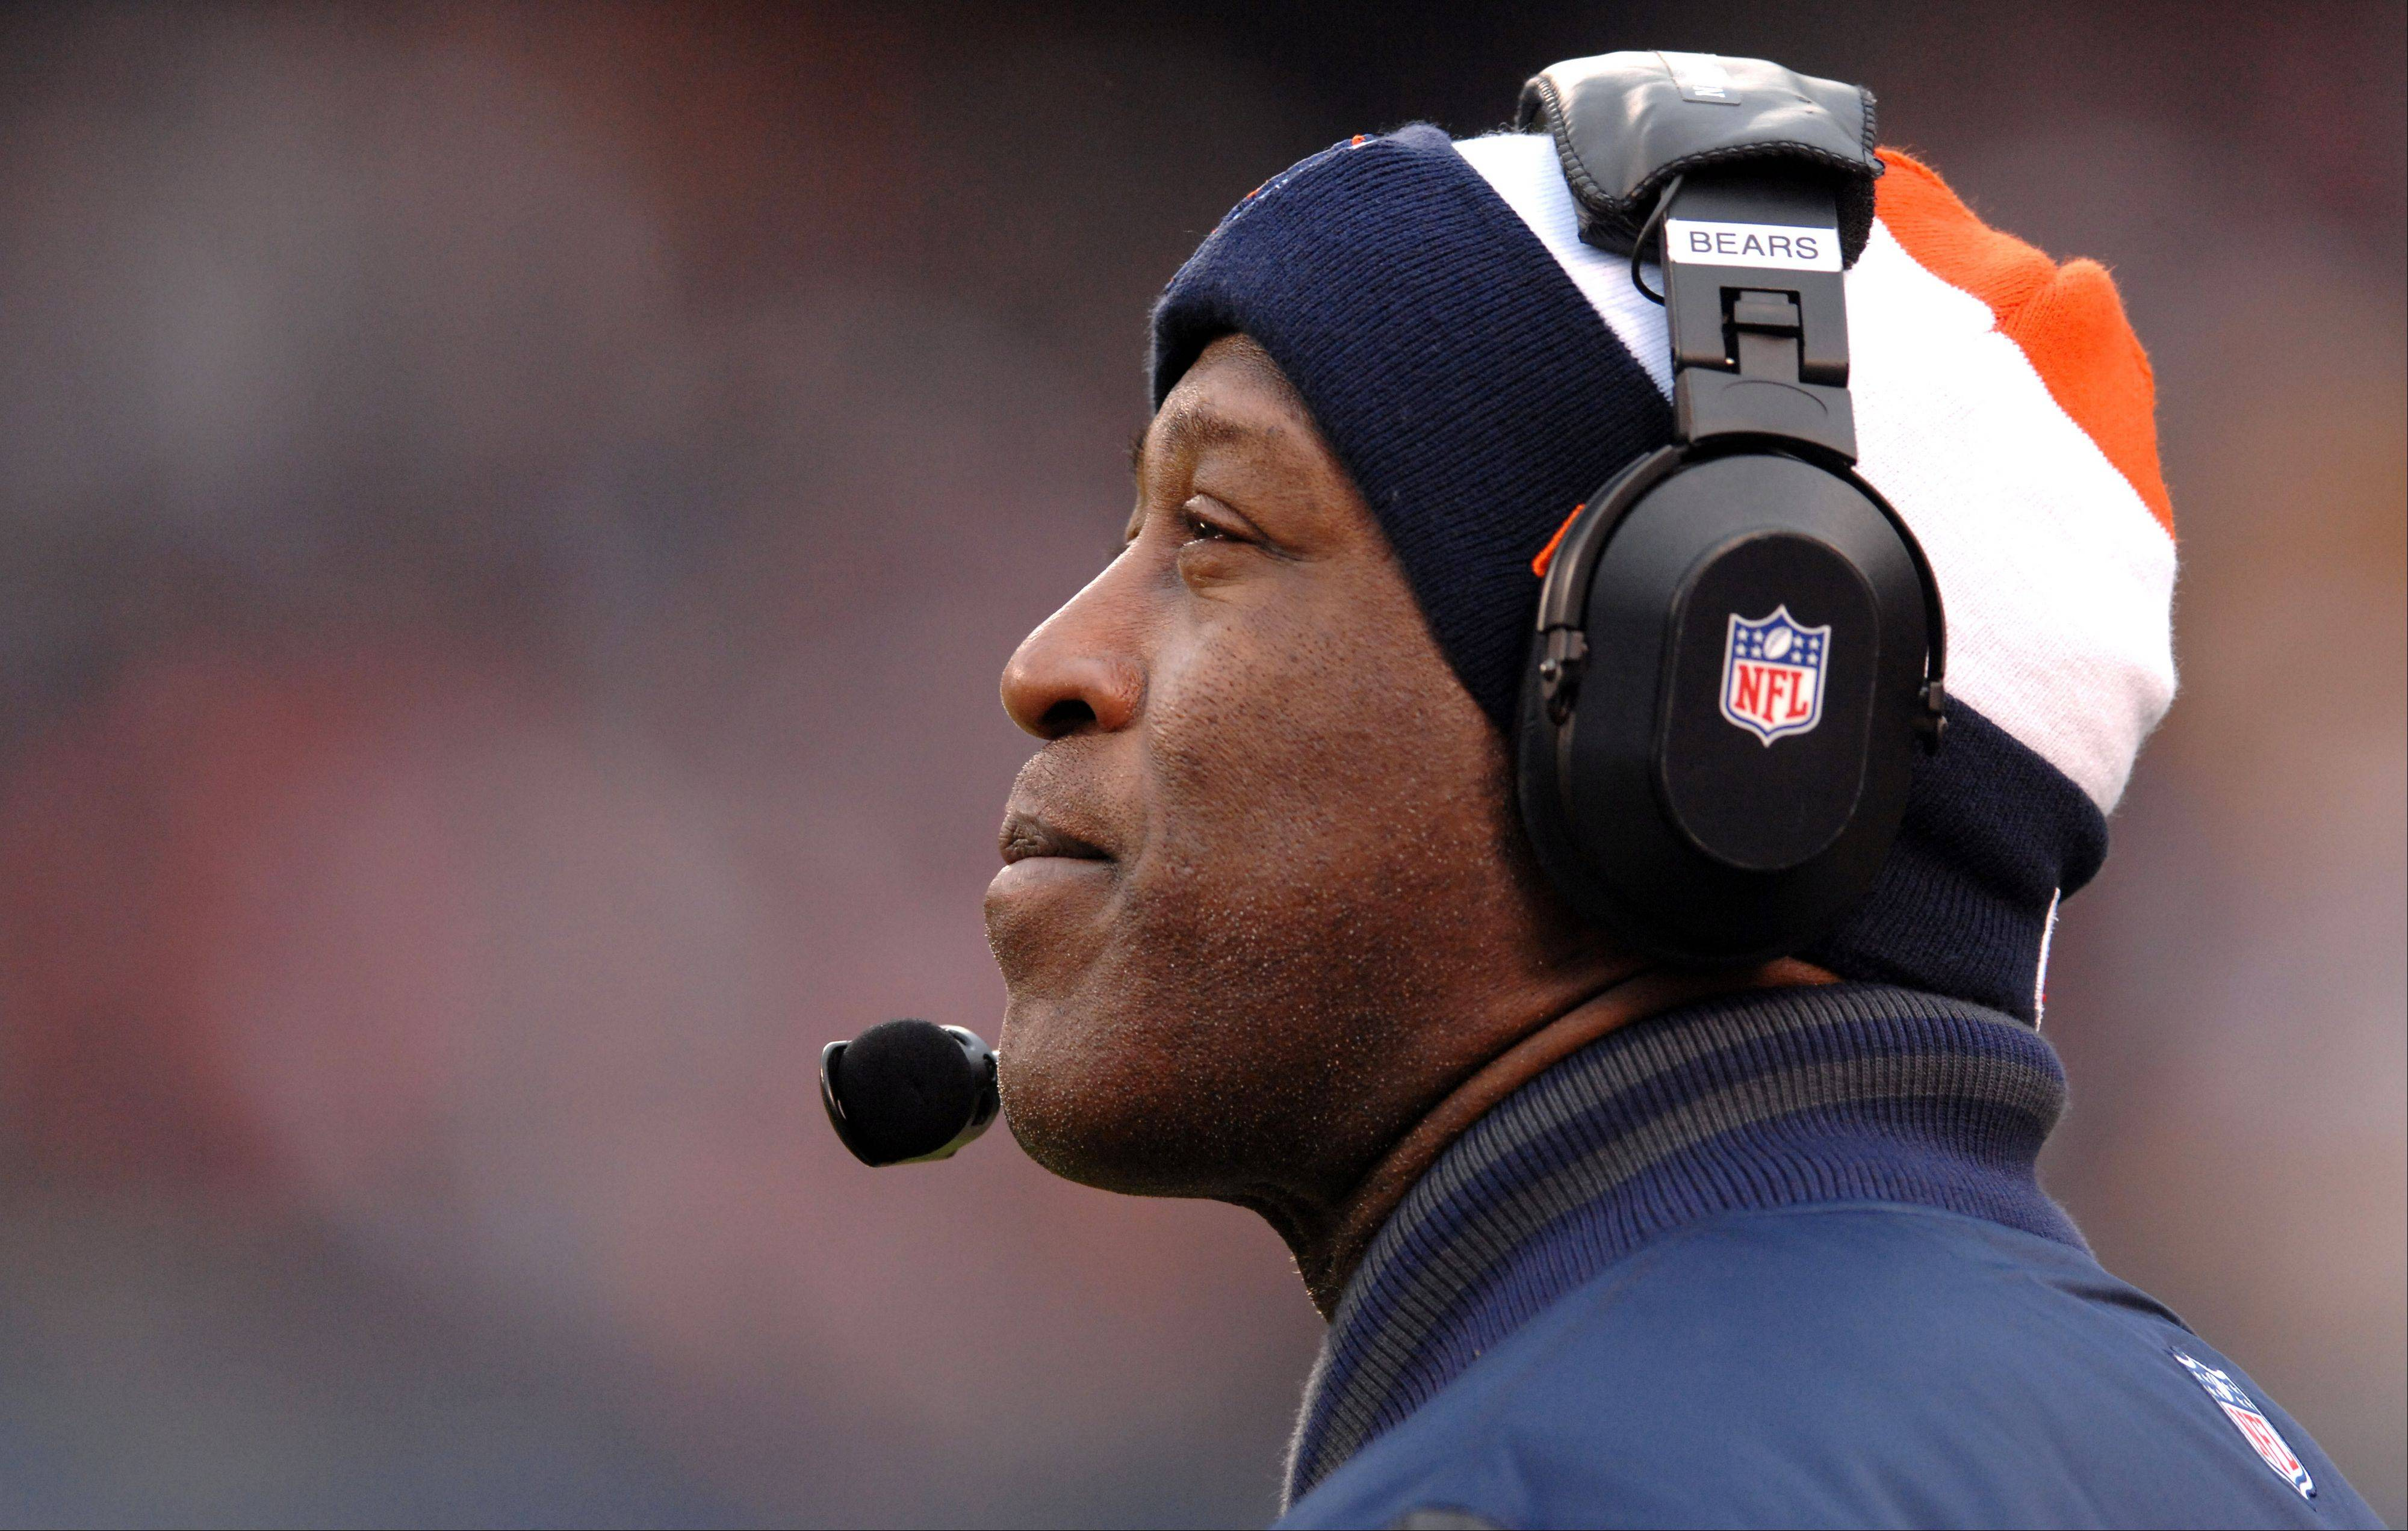 Bears head coach Lovie Smith watches the action during Sunday's game at Soldier Field in Chicago.